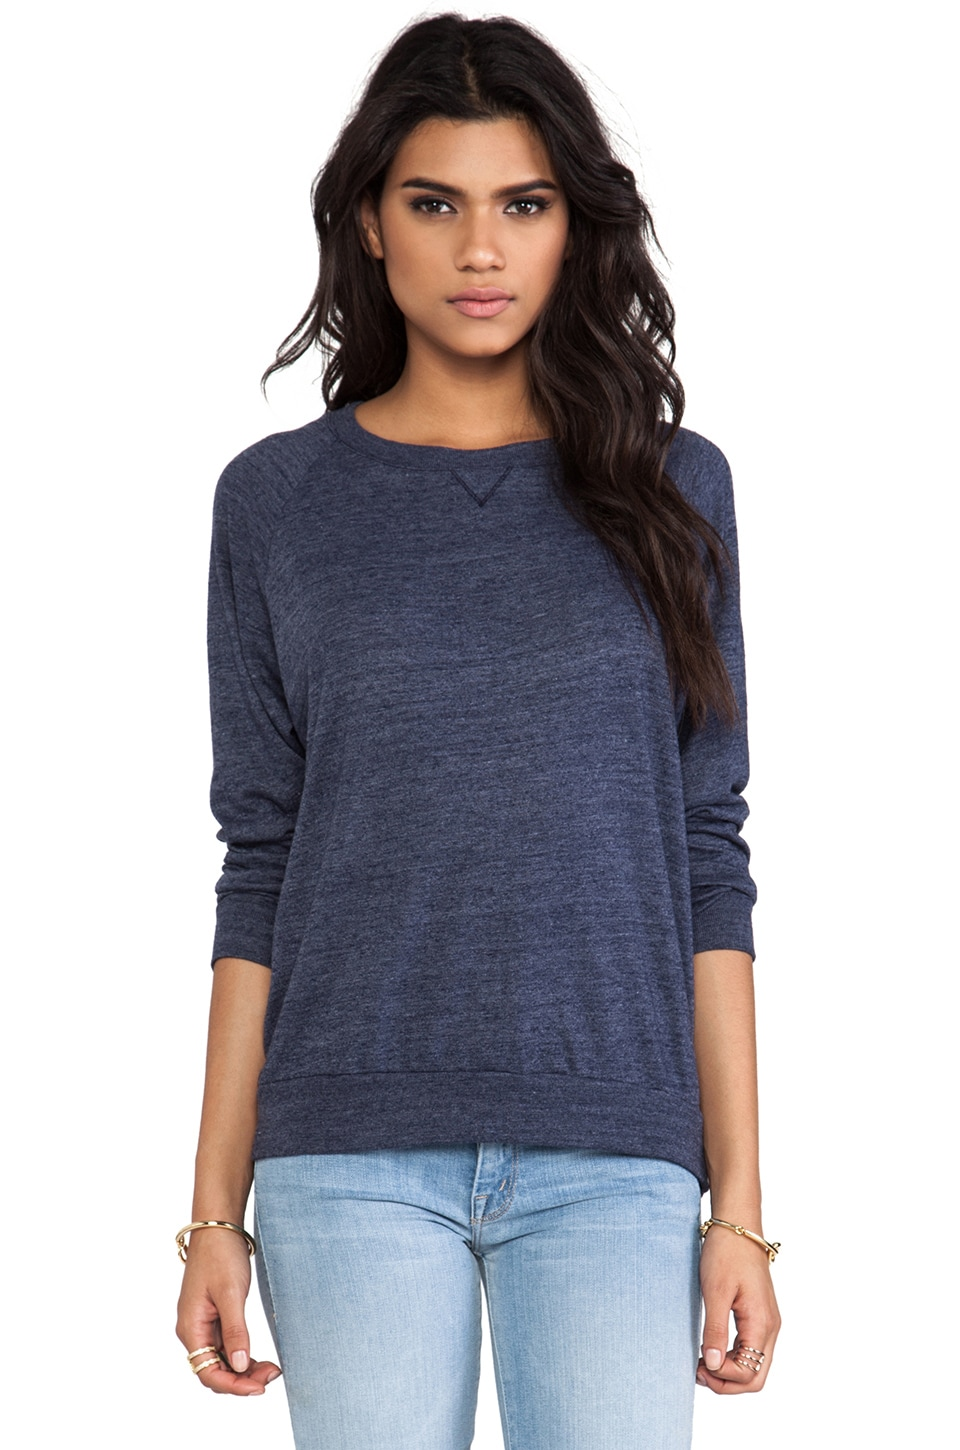 Nation LTD Raglan Sweatshirt in Nation Navy